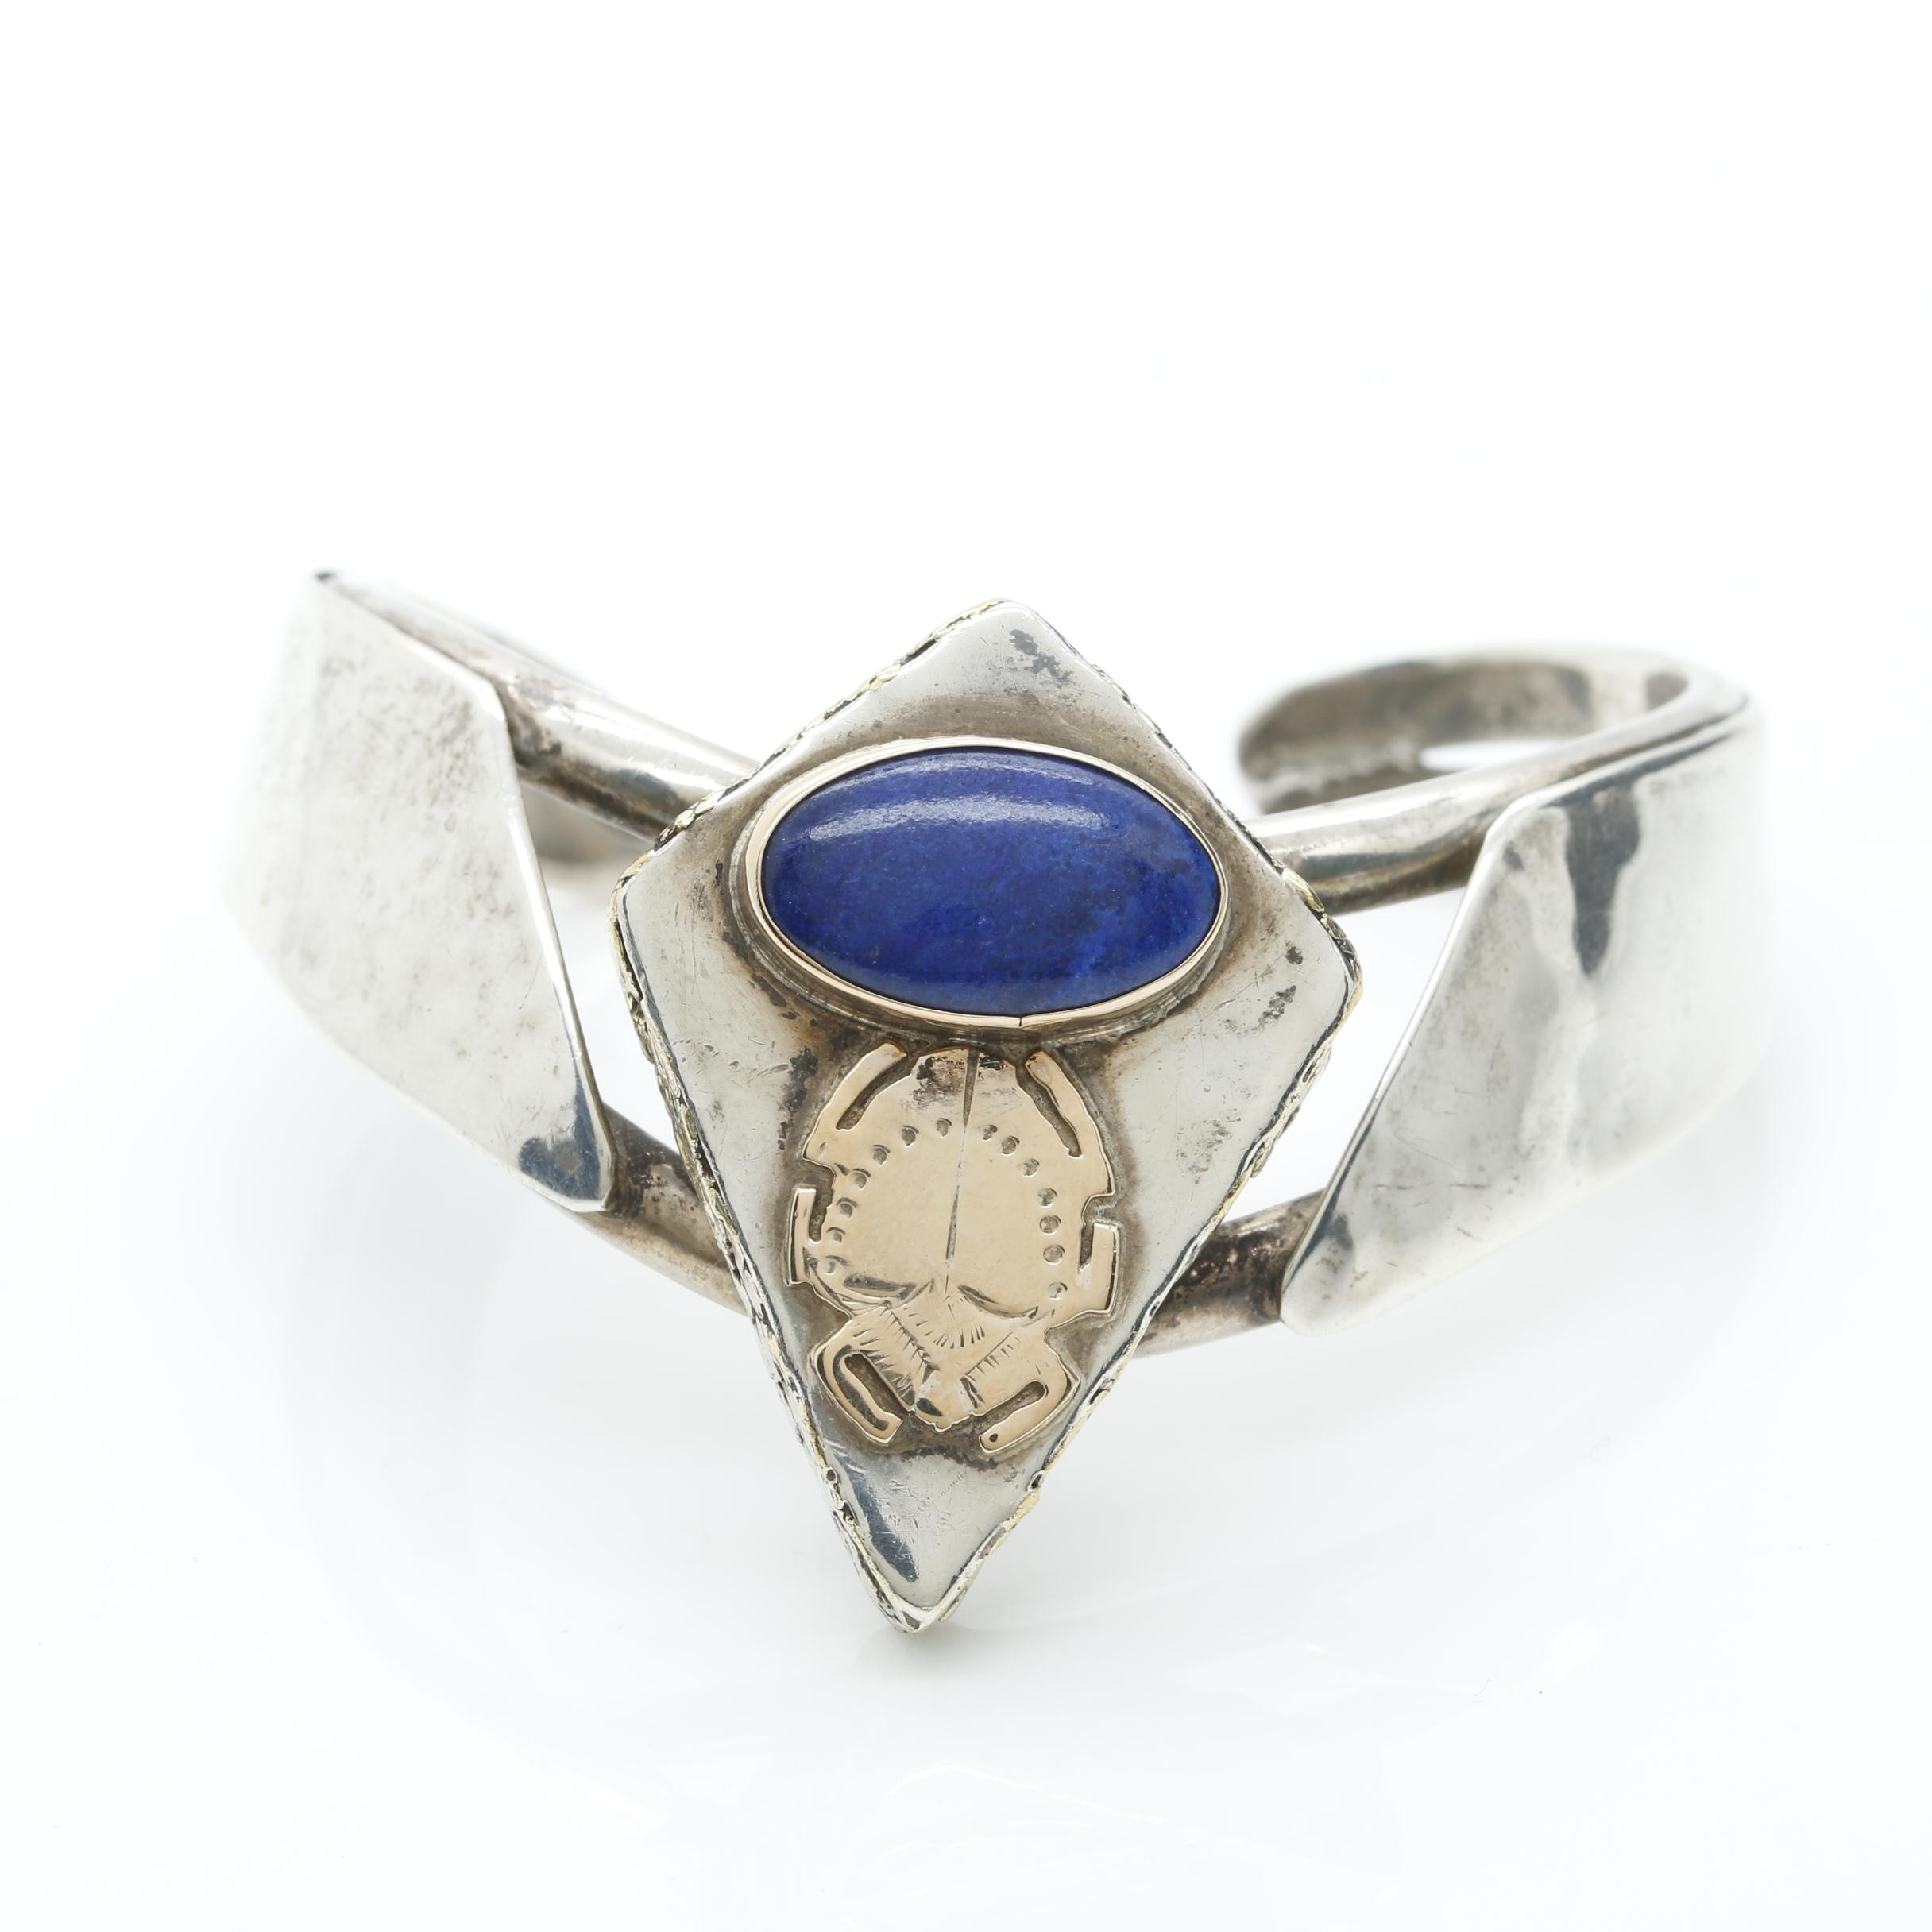 Sterling Silver Lapis Lazuli Cuff Bracelet With 14K Yellow Gold Accents